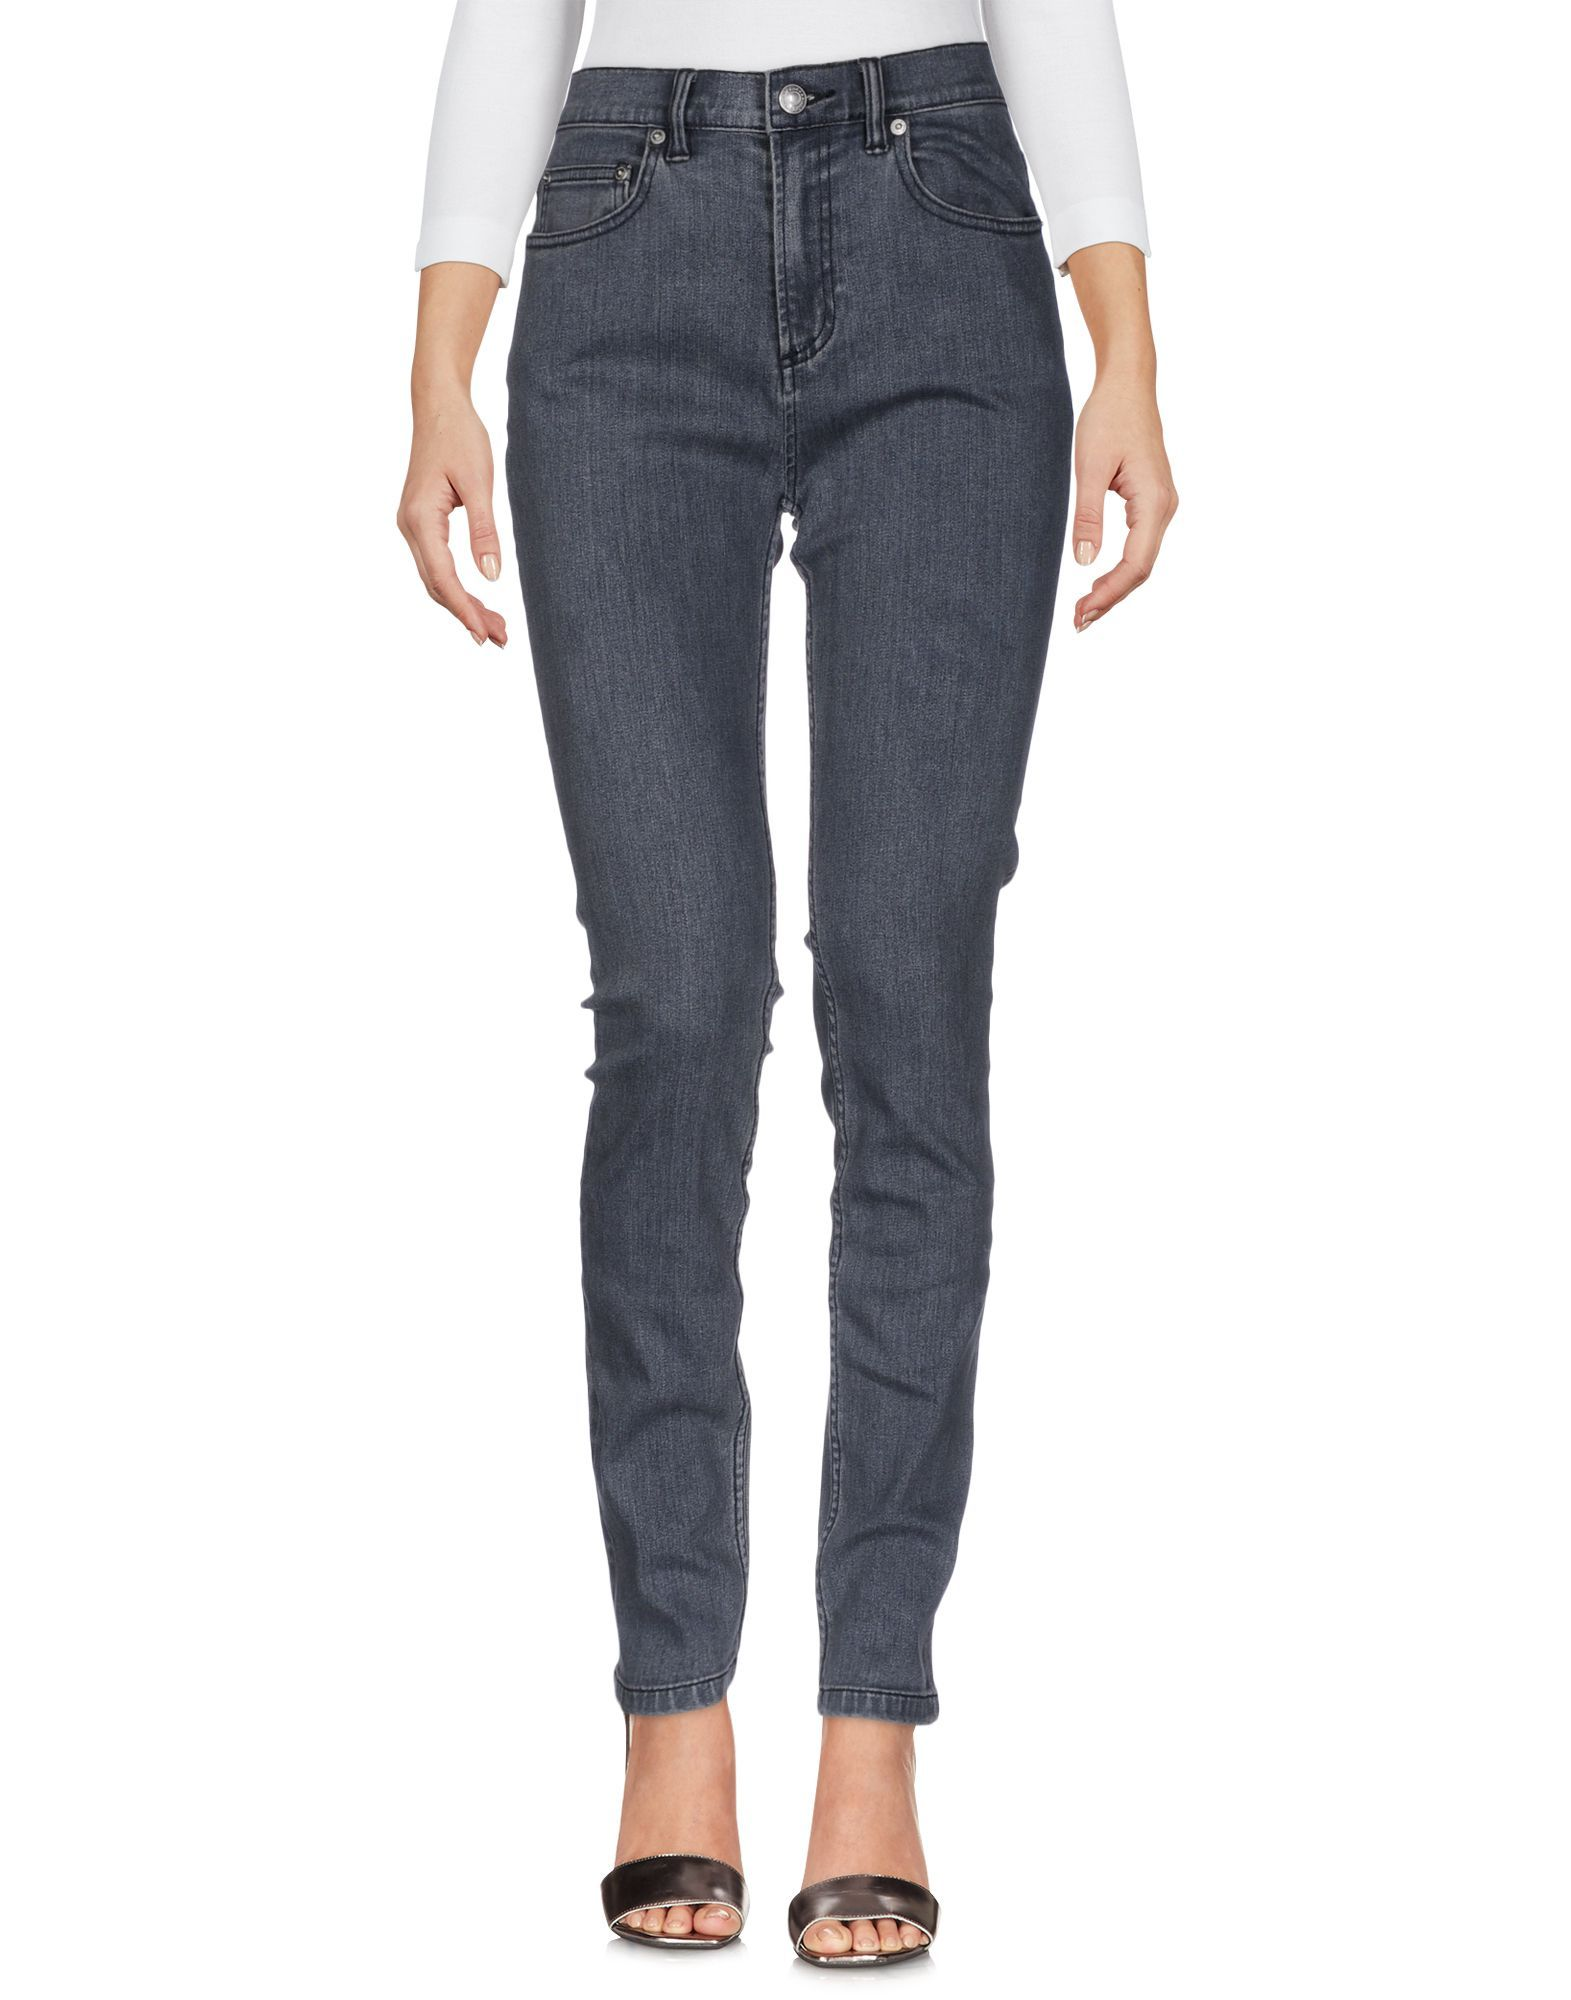 Marc By Marc Jacobs Grey Cotton Skinny Jeans